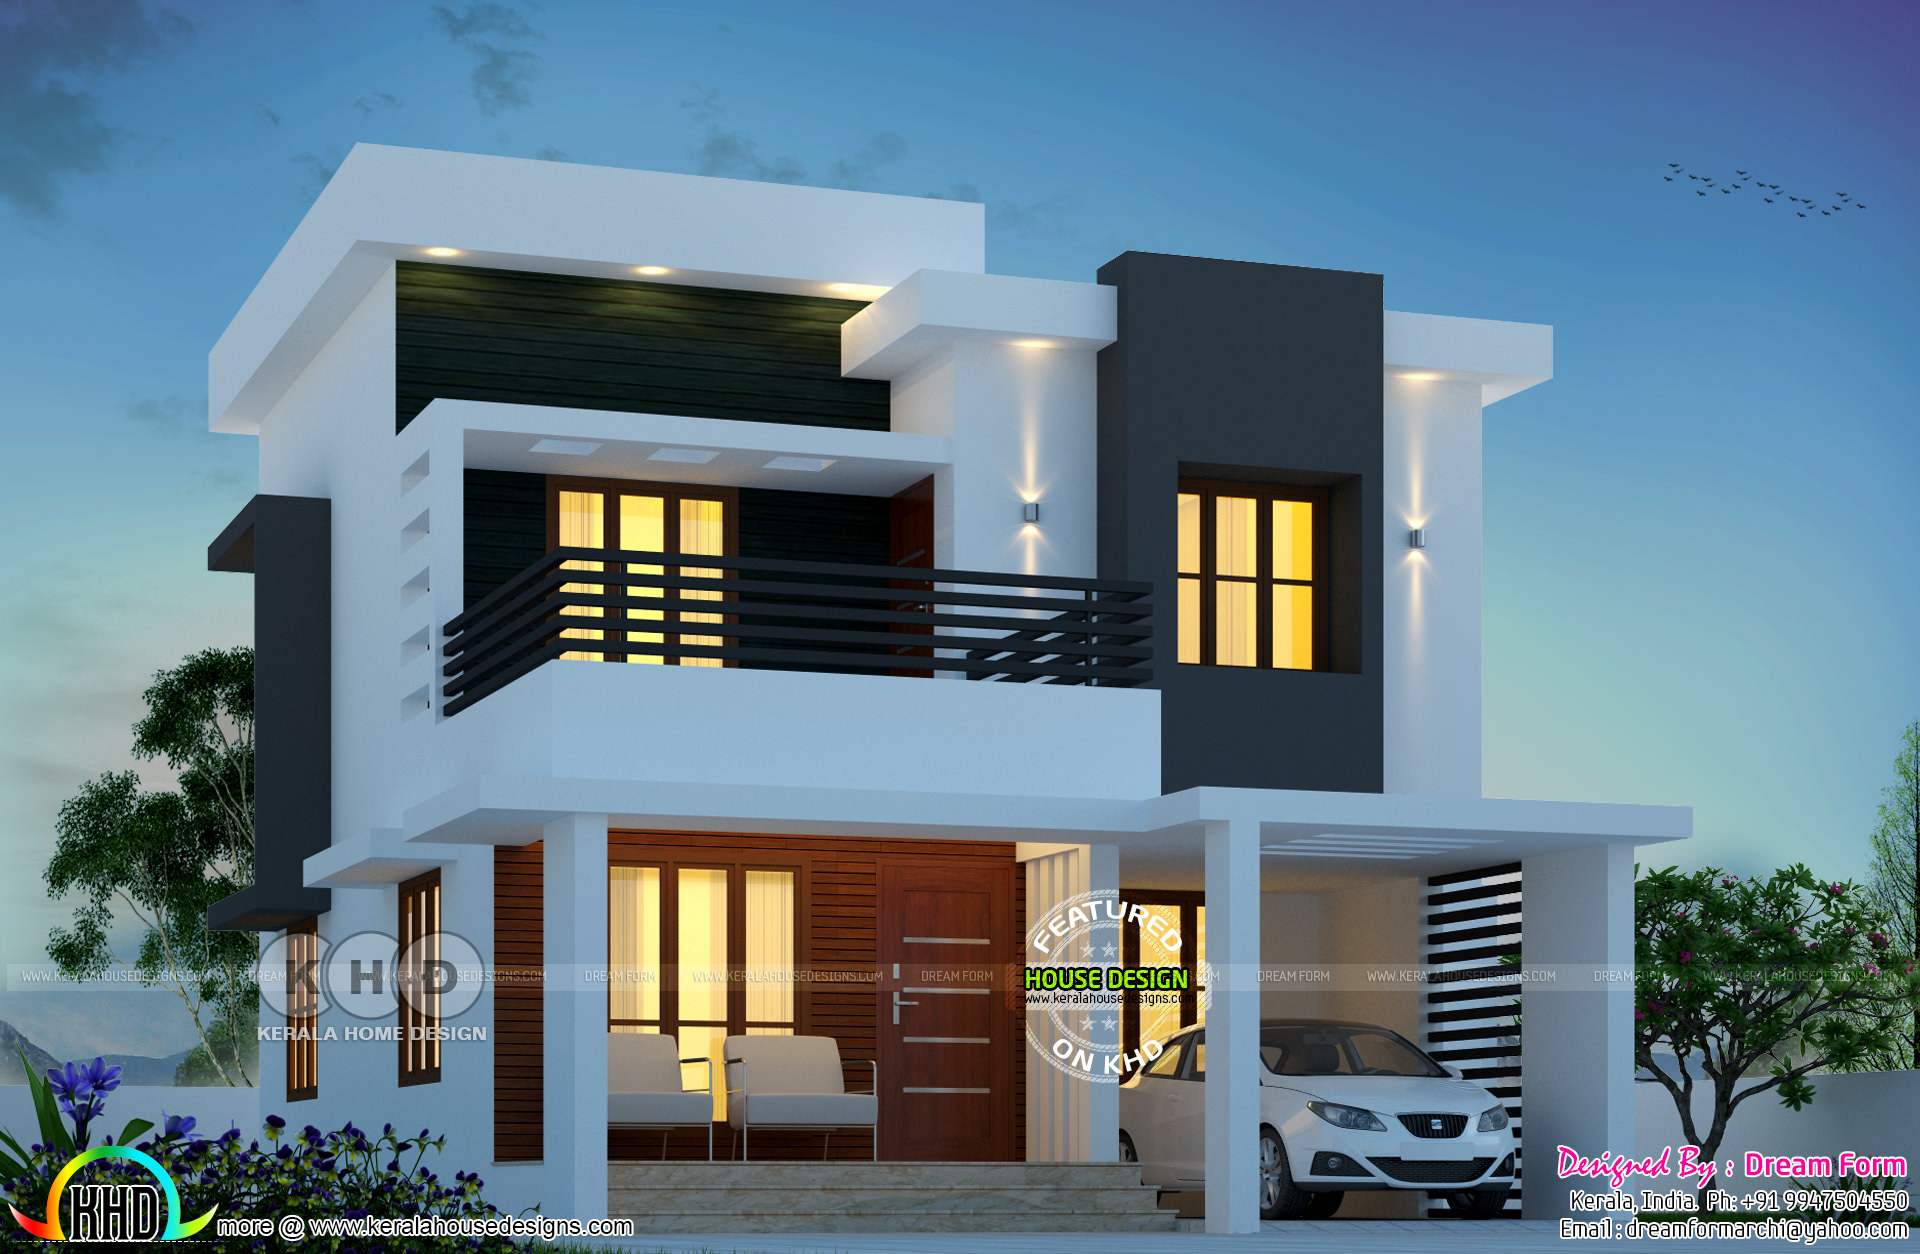 1650 Square Feet 3 Bedroom Cute Home Double Storied Kerala Home Design And Floor Plans 8000 Houses